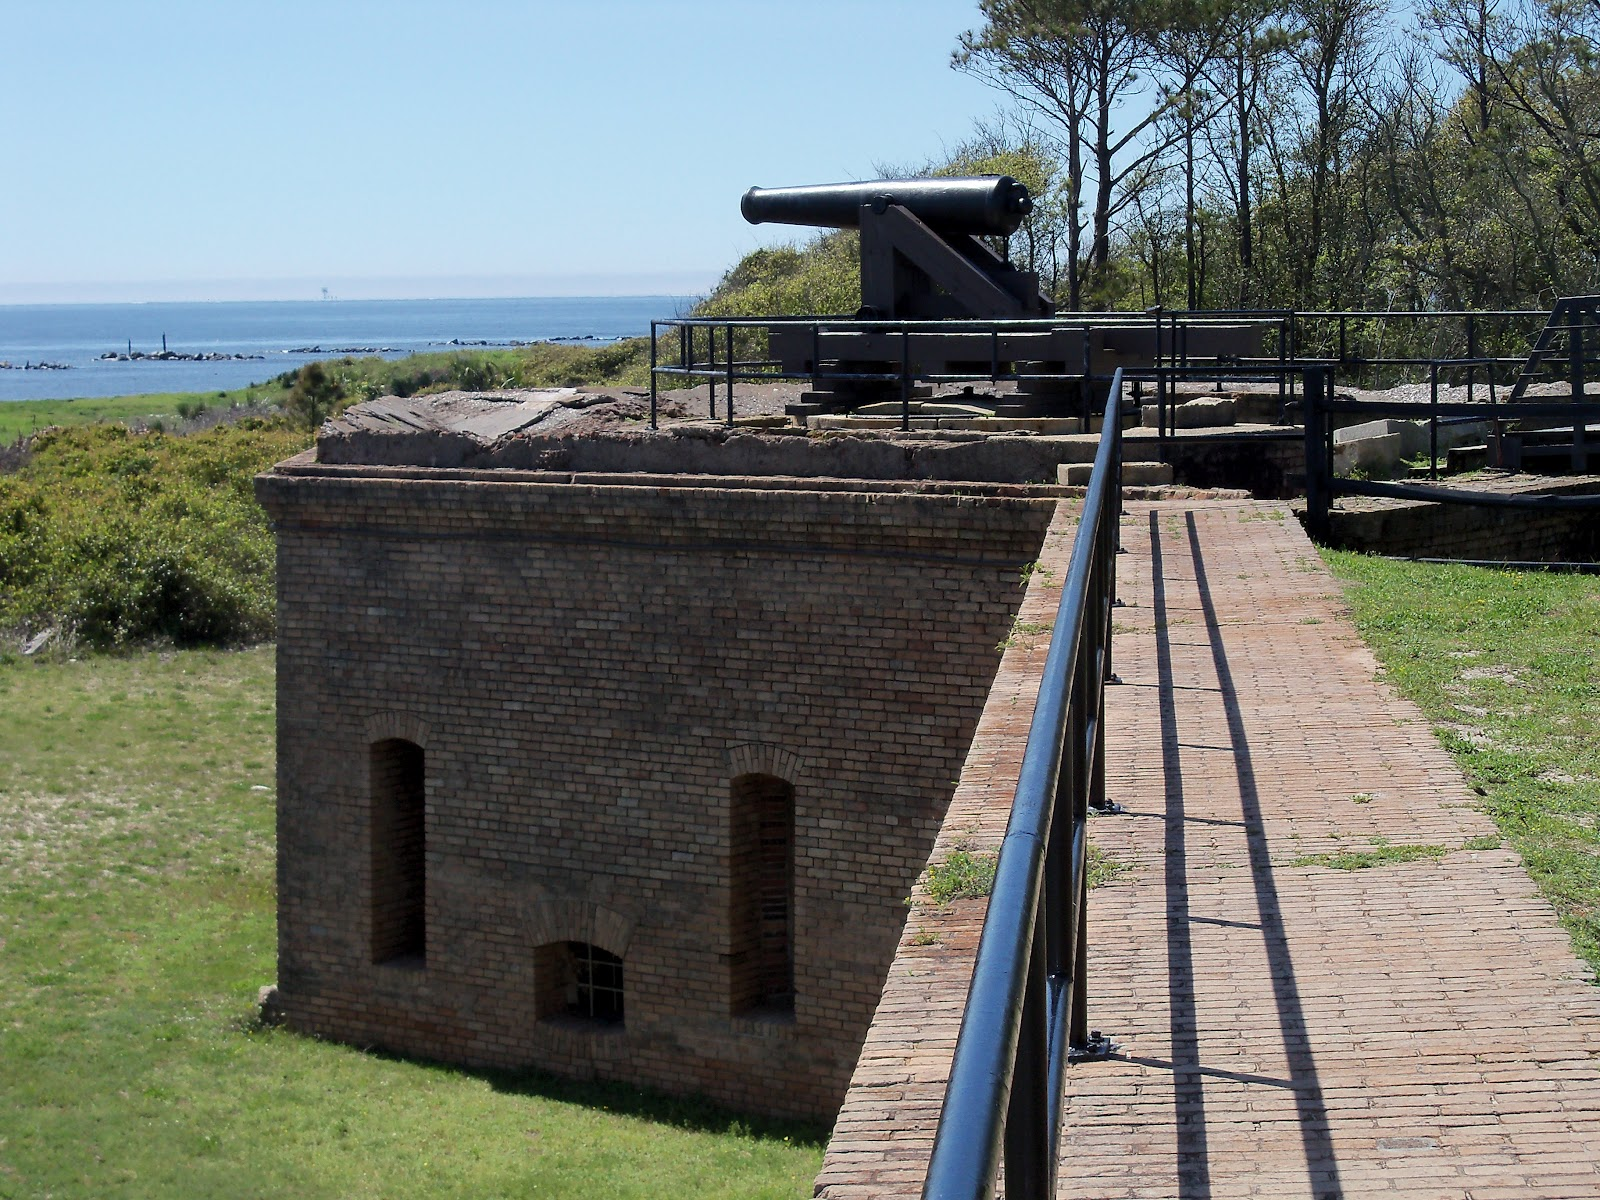 fort gaines chat rooms Meet fort gaines singles online & chat in the forums dhu is a 100% free dating site to find personals & casual encounters in fort gaines.